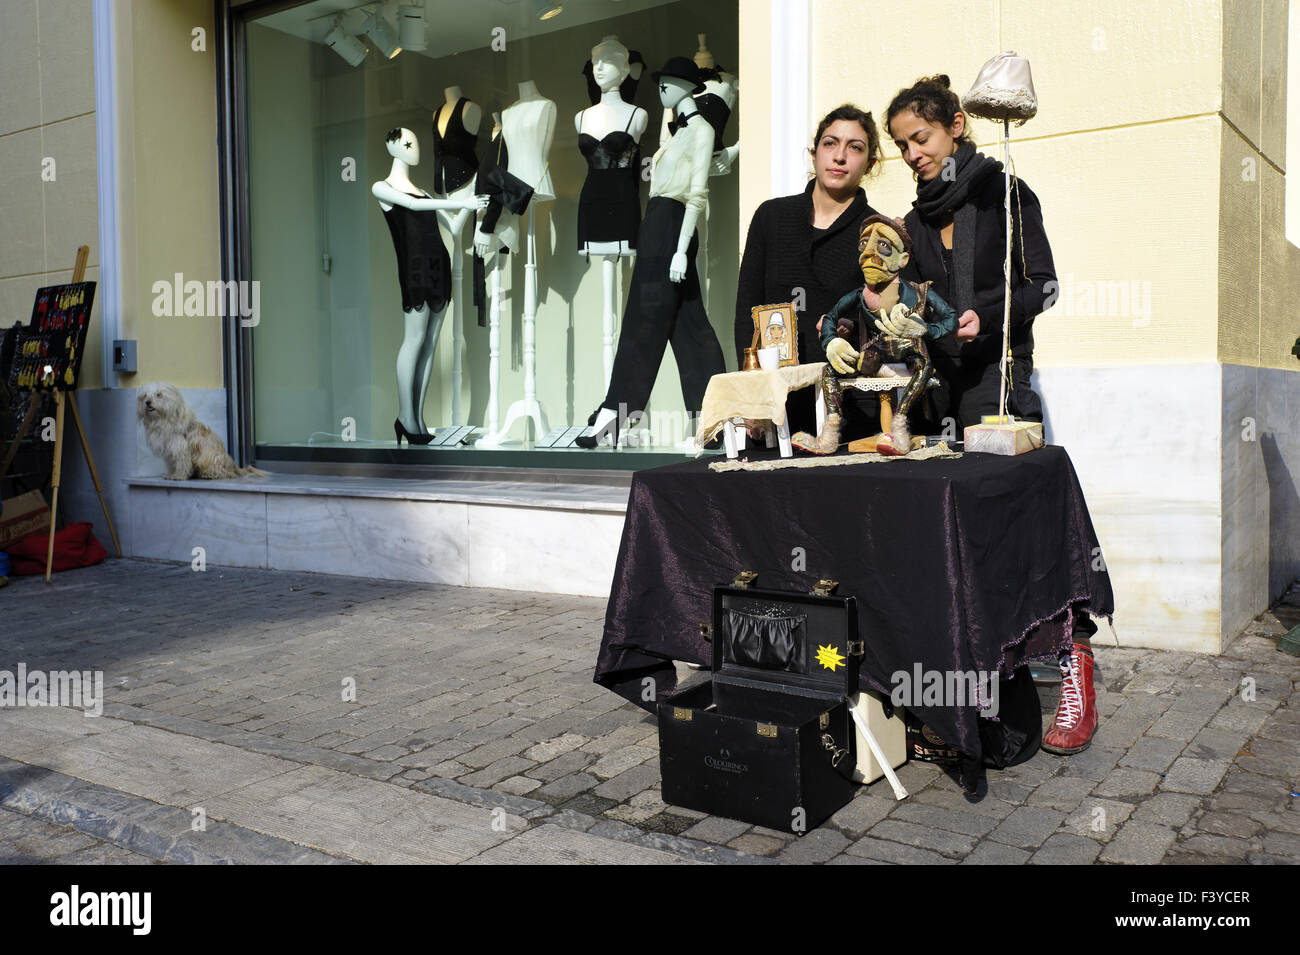 Puppeteer, Athens, Greece, Europe - Stock Image